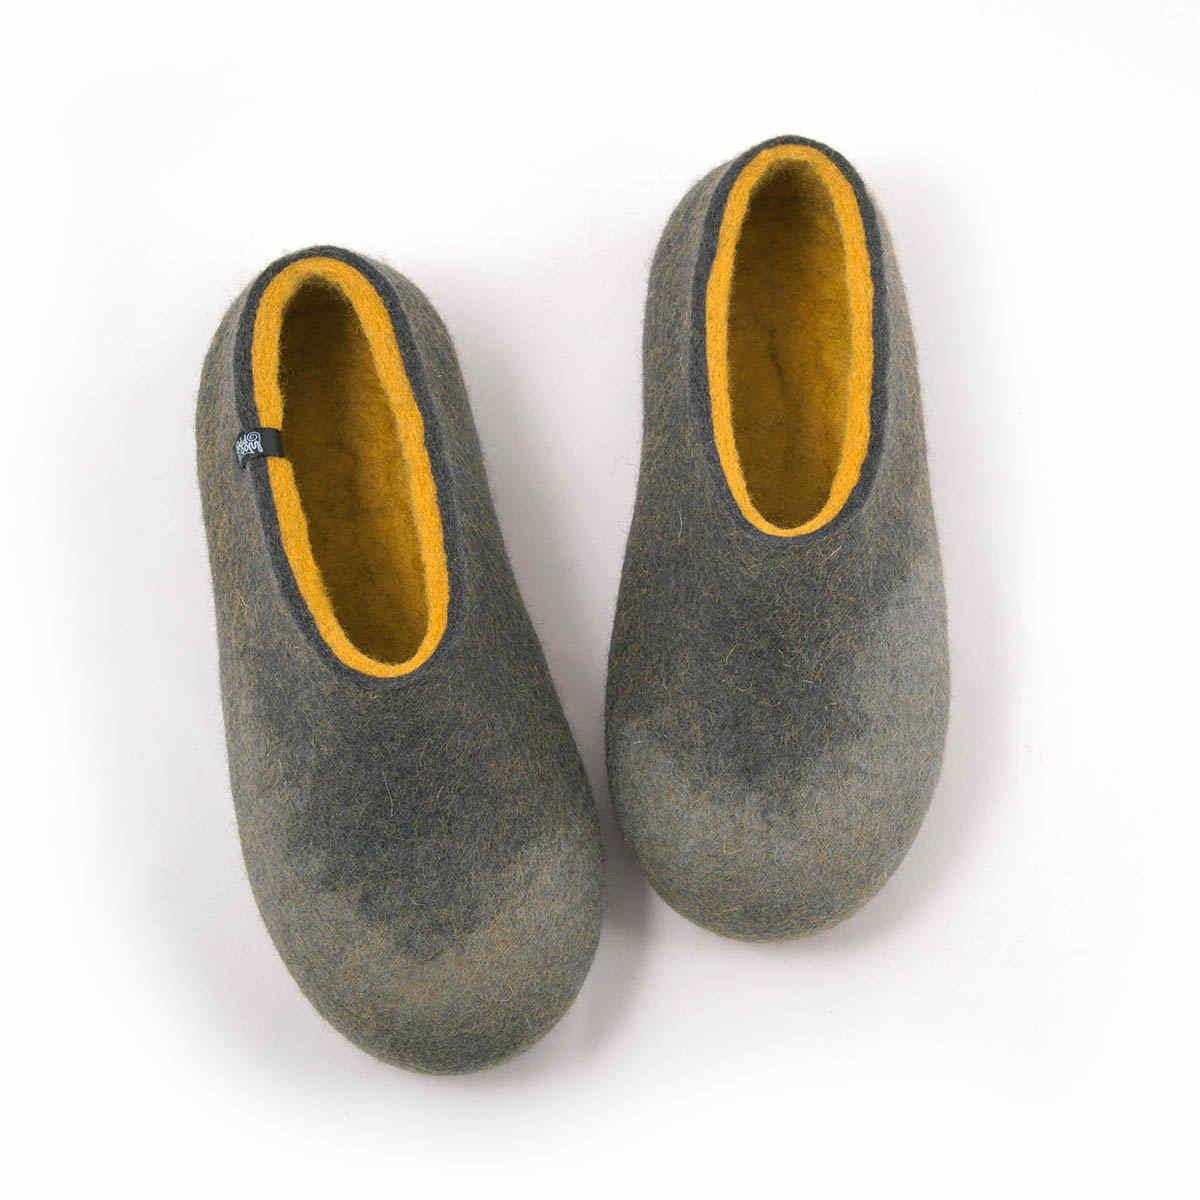 AMIGOS comfy slippers grey and mustard yellow